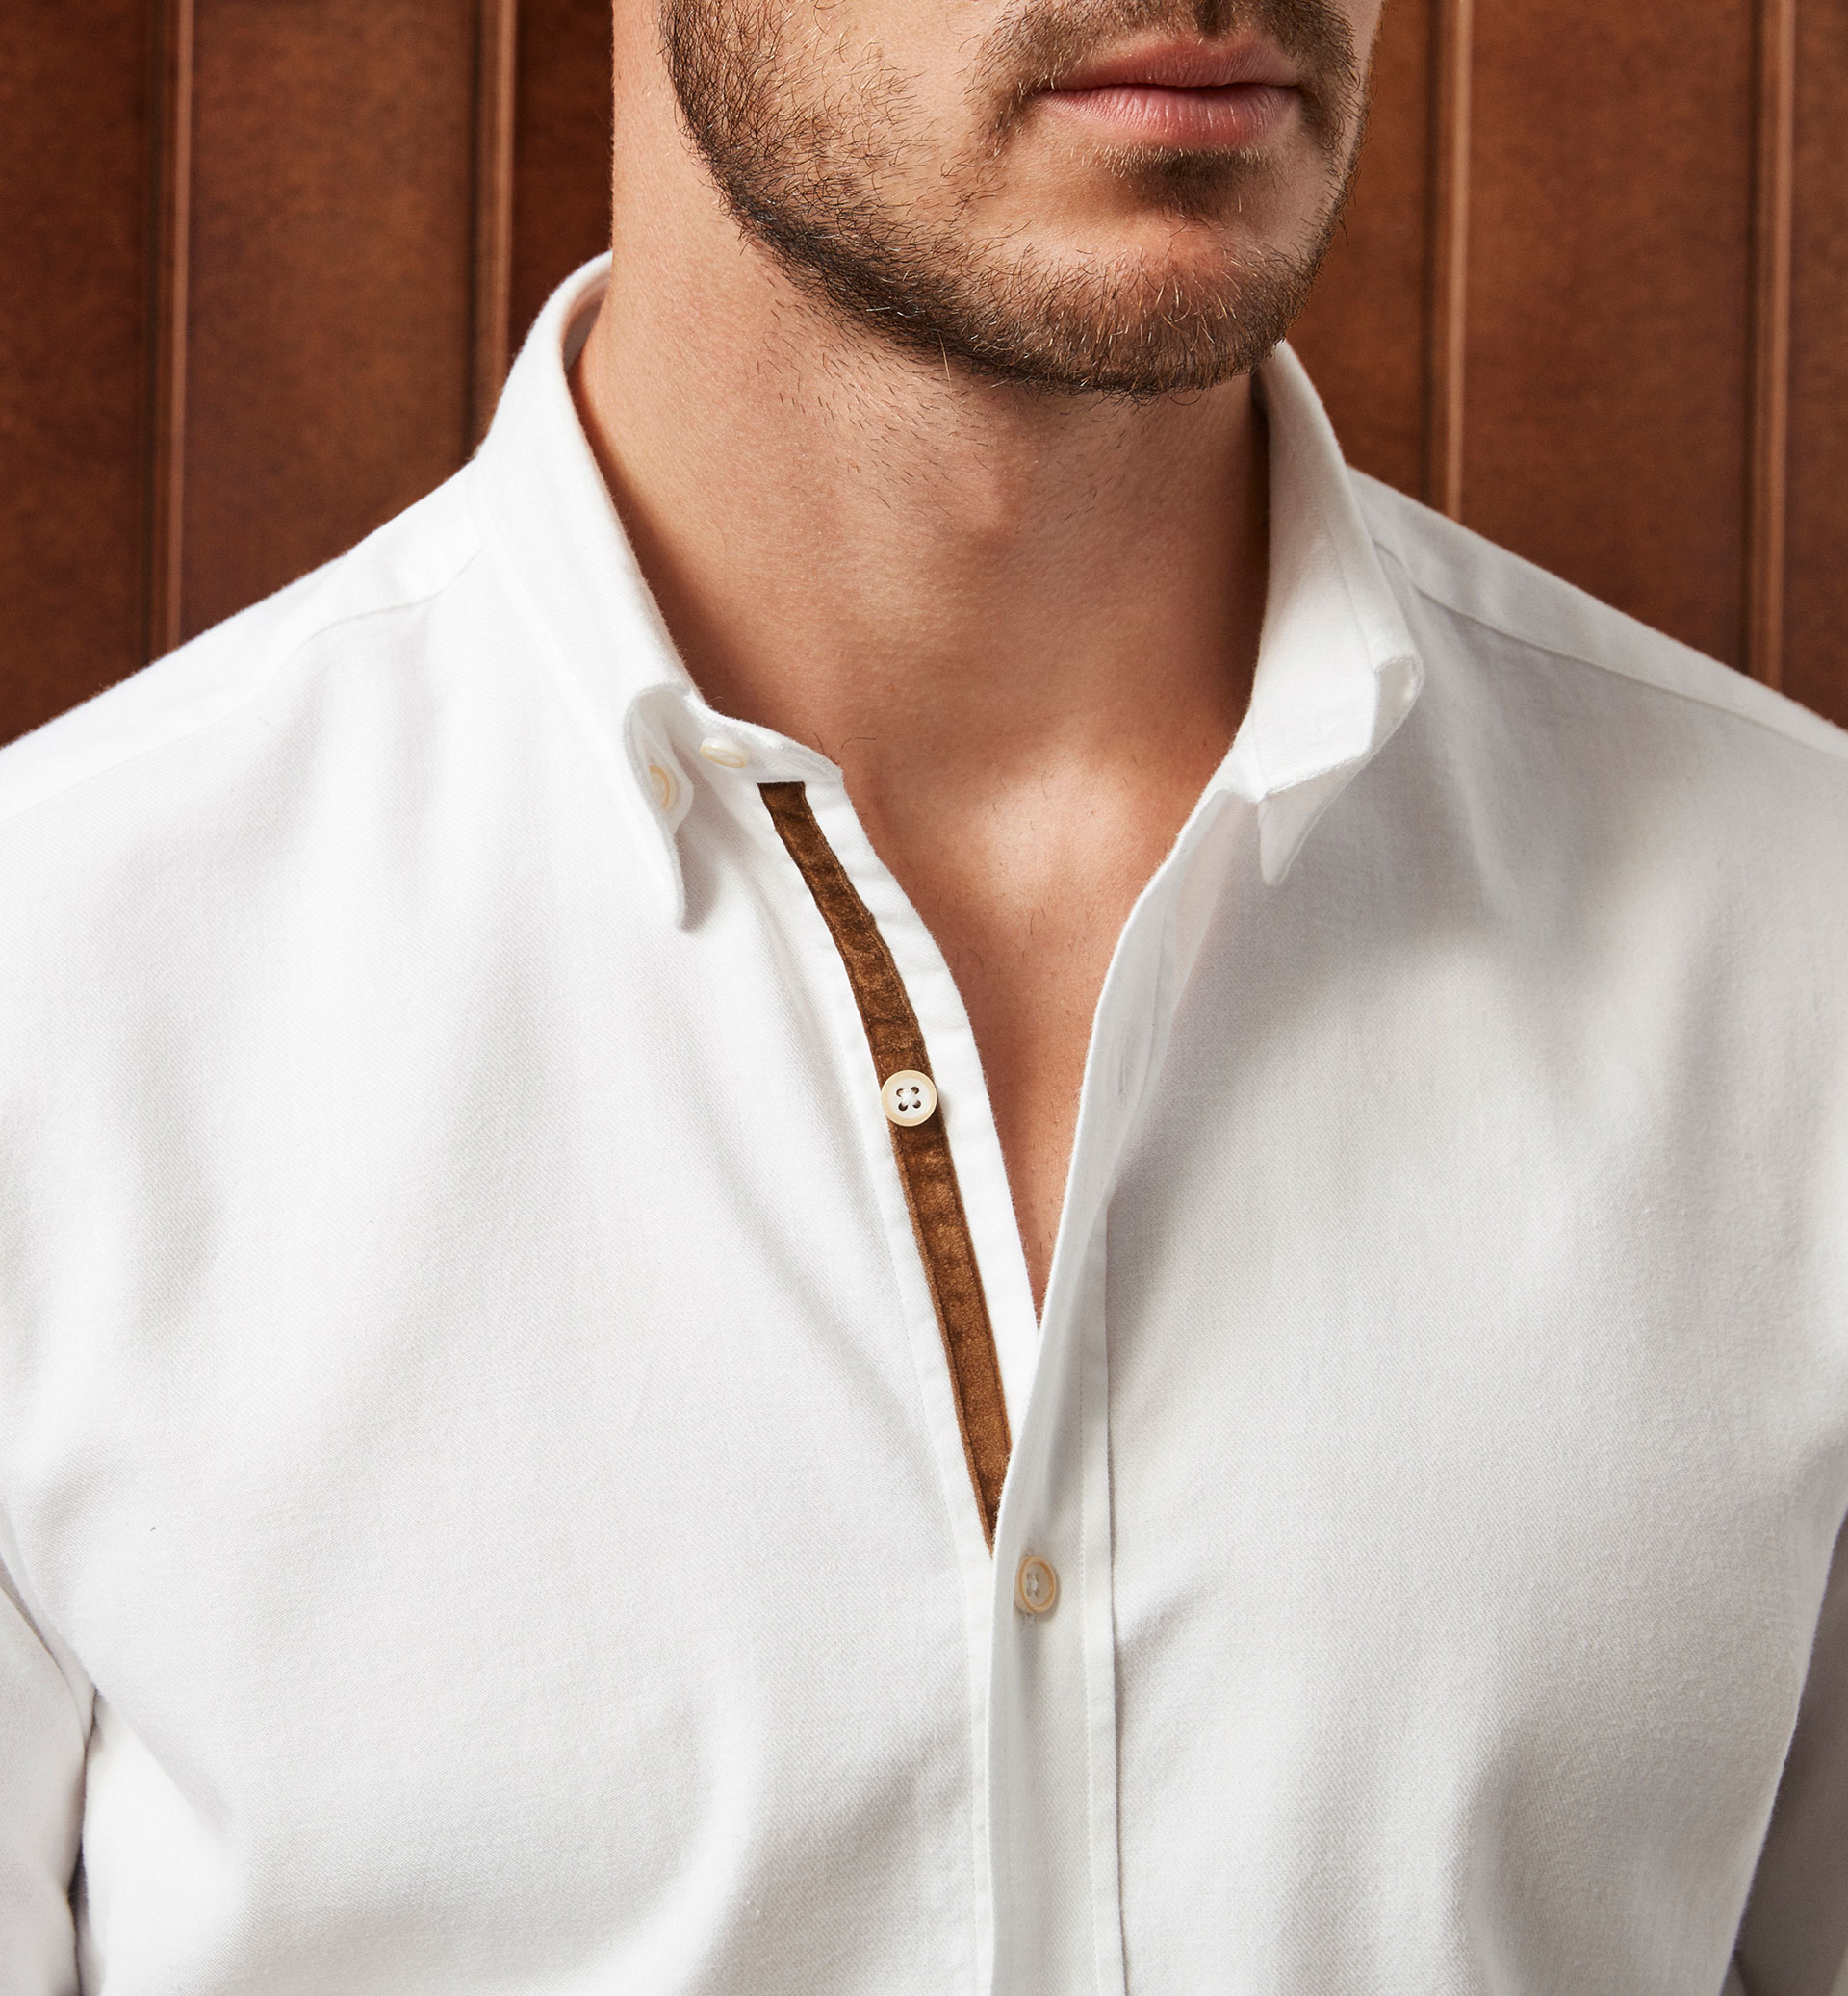 LIMITED EDITION WHITE SHIRT WITH A FAUX-SUEDE DETAIL